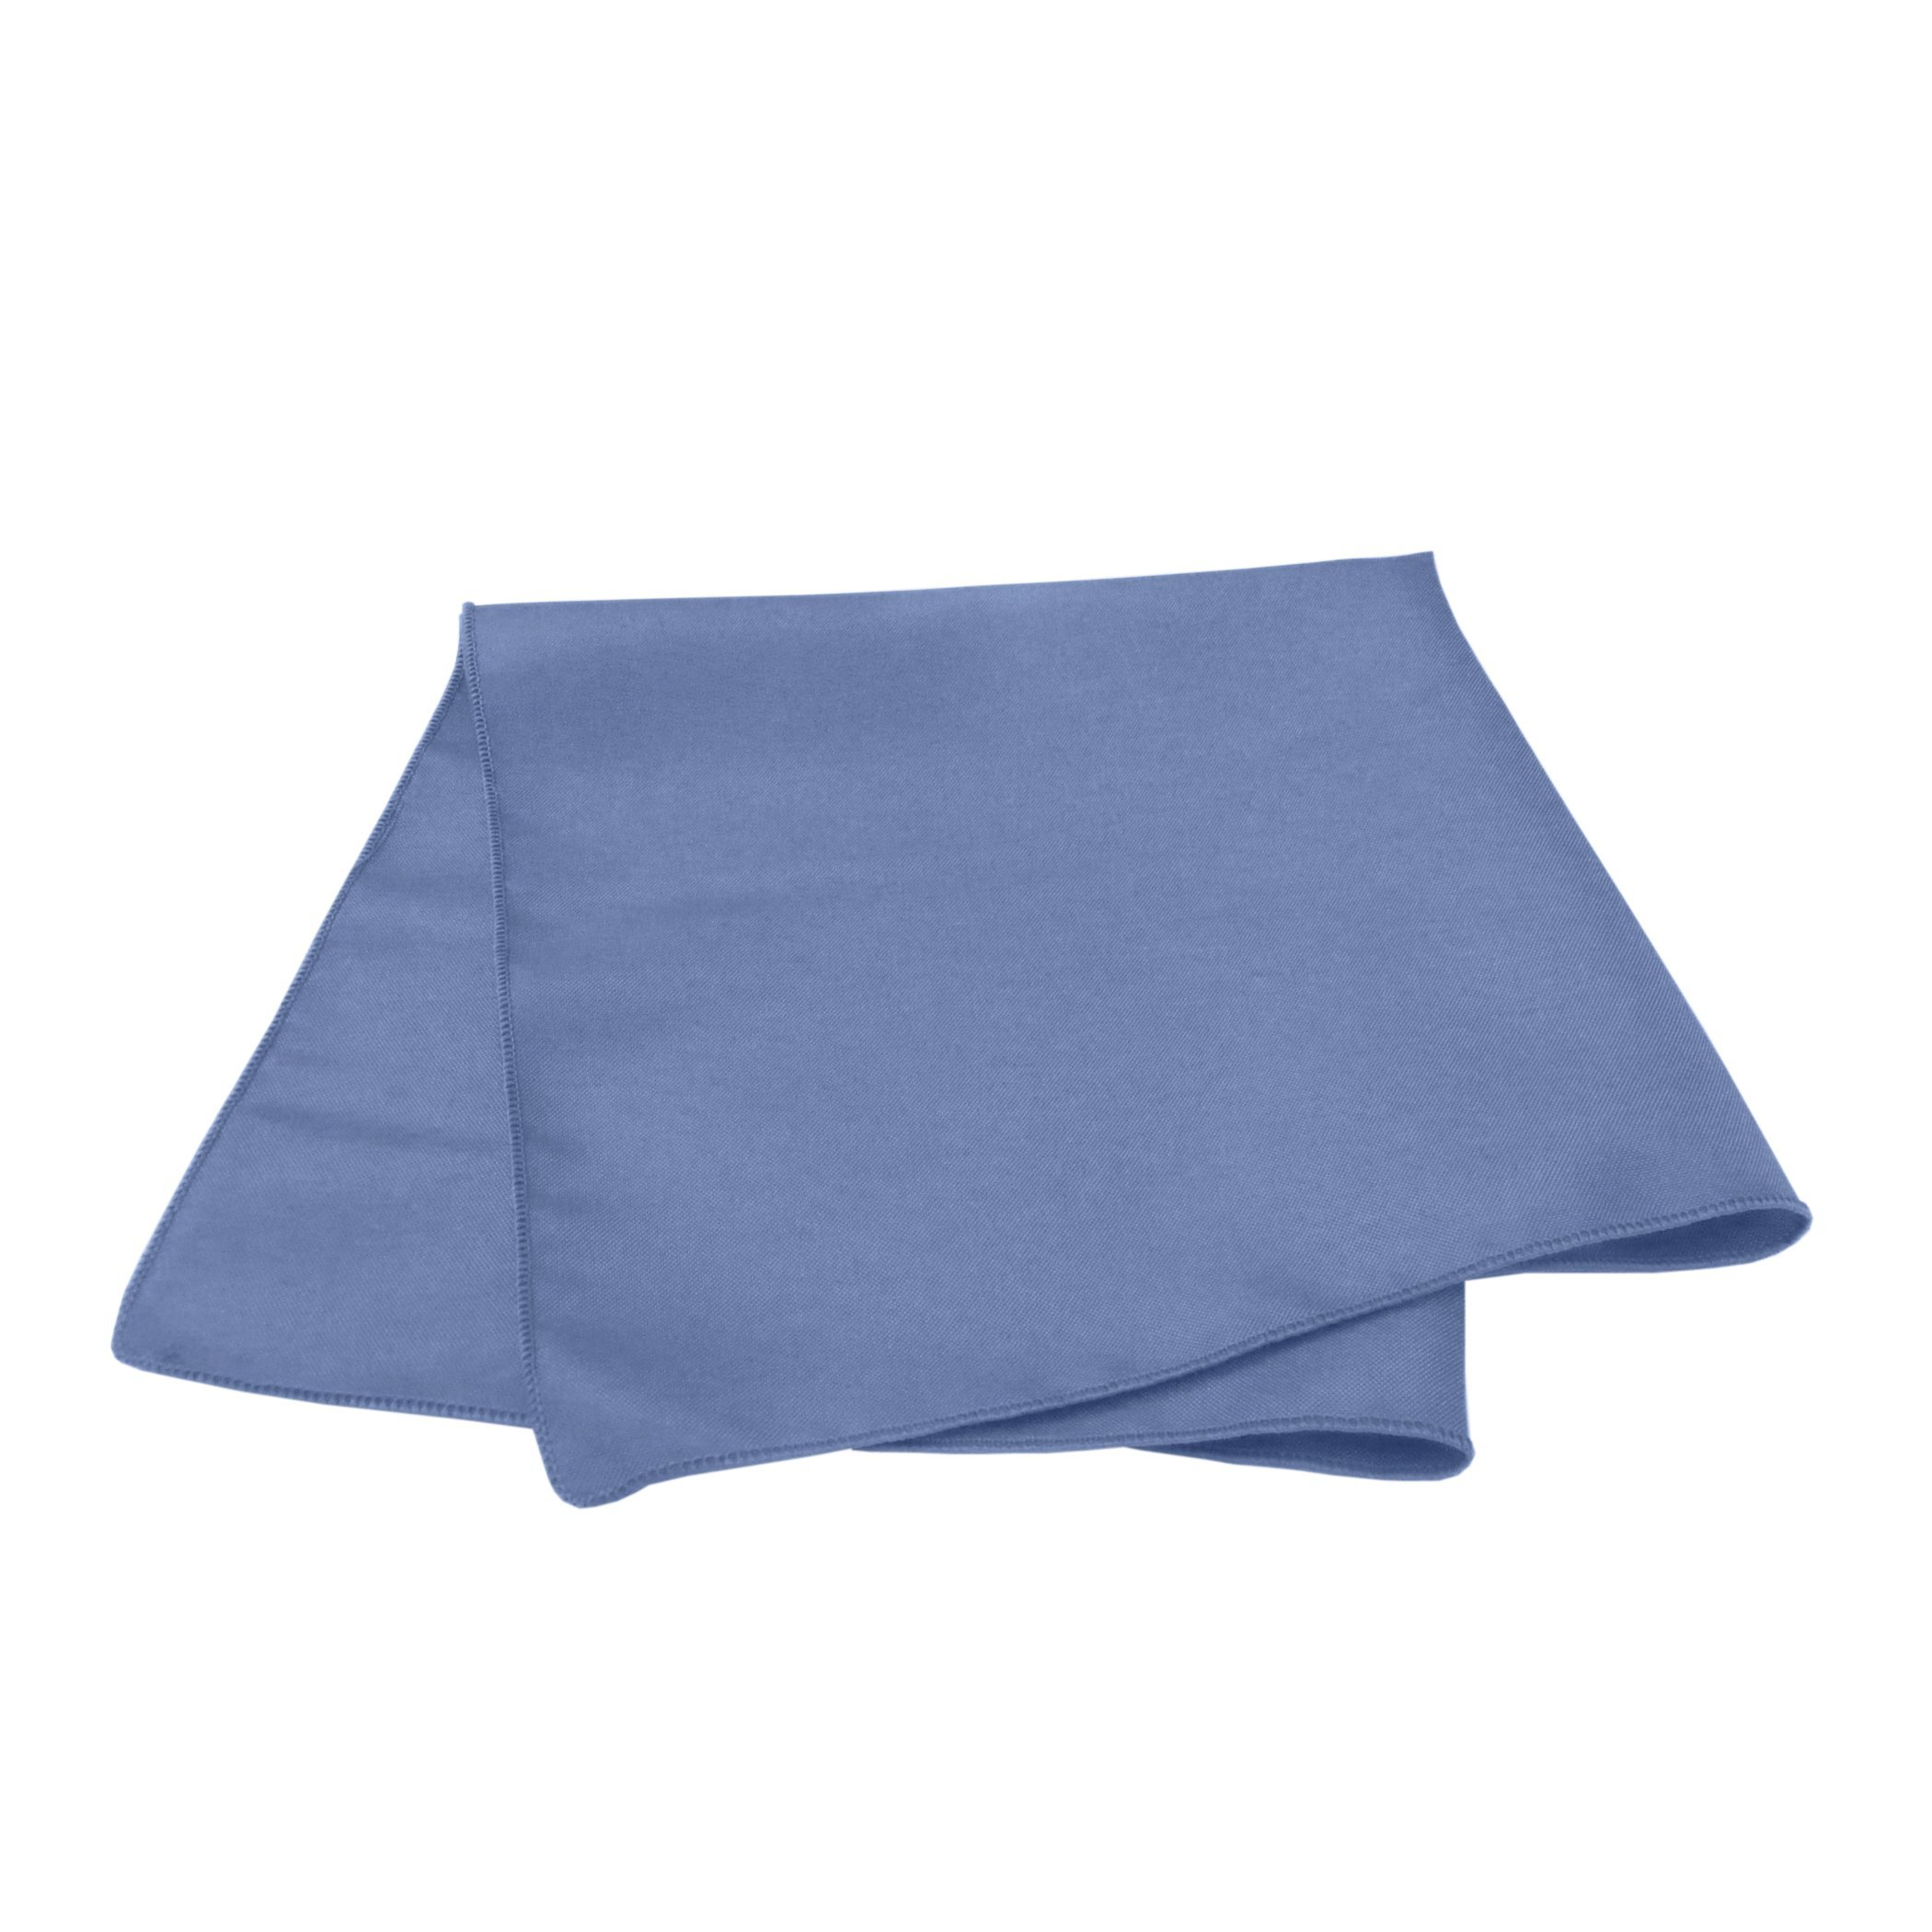 Ultimate Textile -3 Dozen- 10 x 10-Inch Cloth Cocktail Napkins - for Wedding, Restaurant or Banquet use, Periwinkle Blue